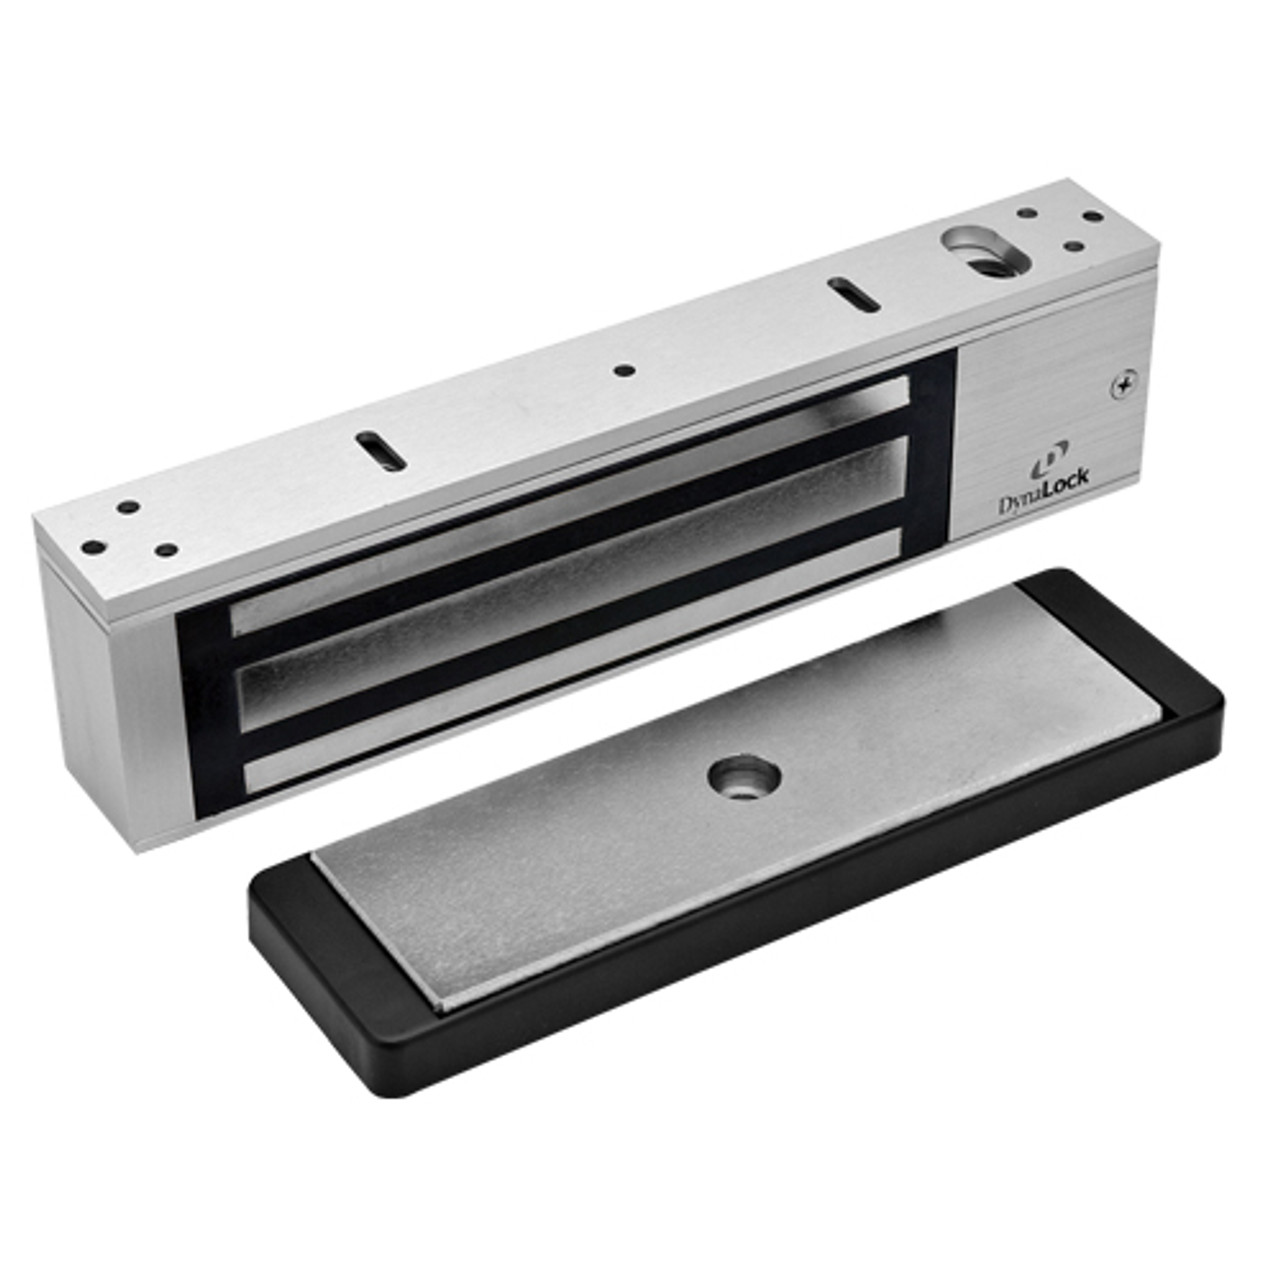 2011-US28-LP DynaLock 2000 Series 1200 LB Holding Force Single Electromagnetic Lock with Low Power Coil Single Lock in Satin Aluminum